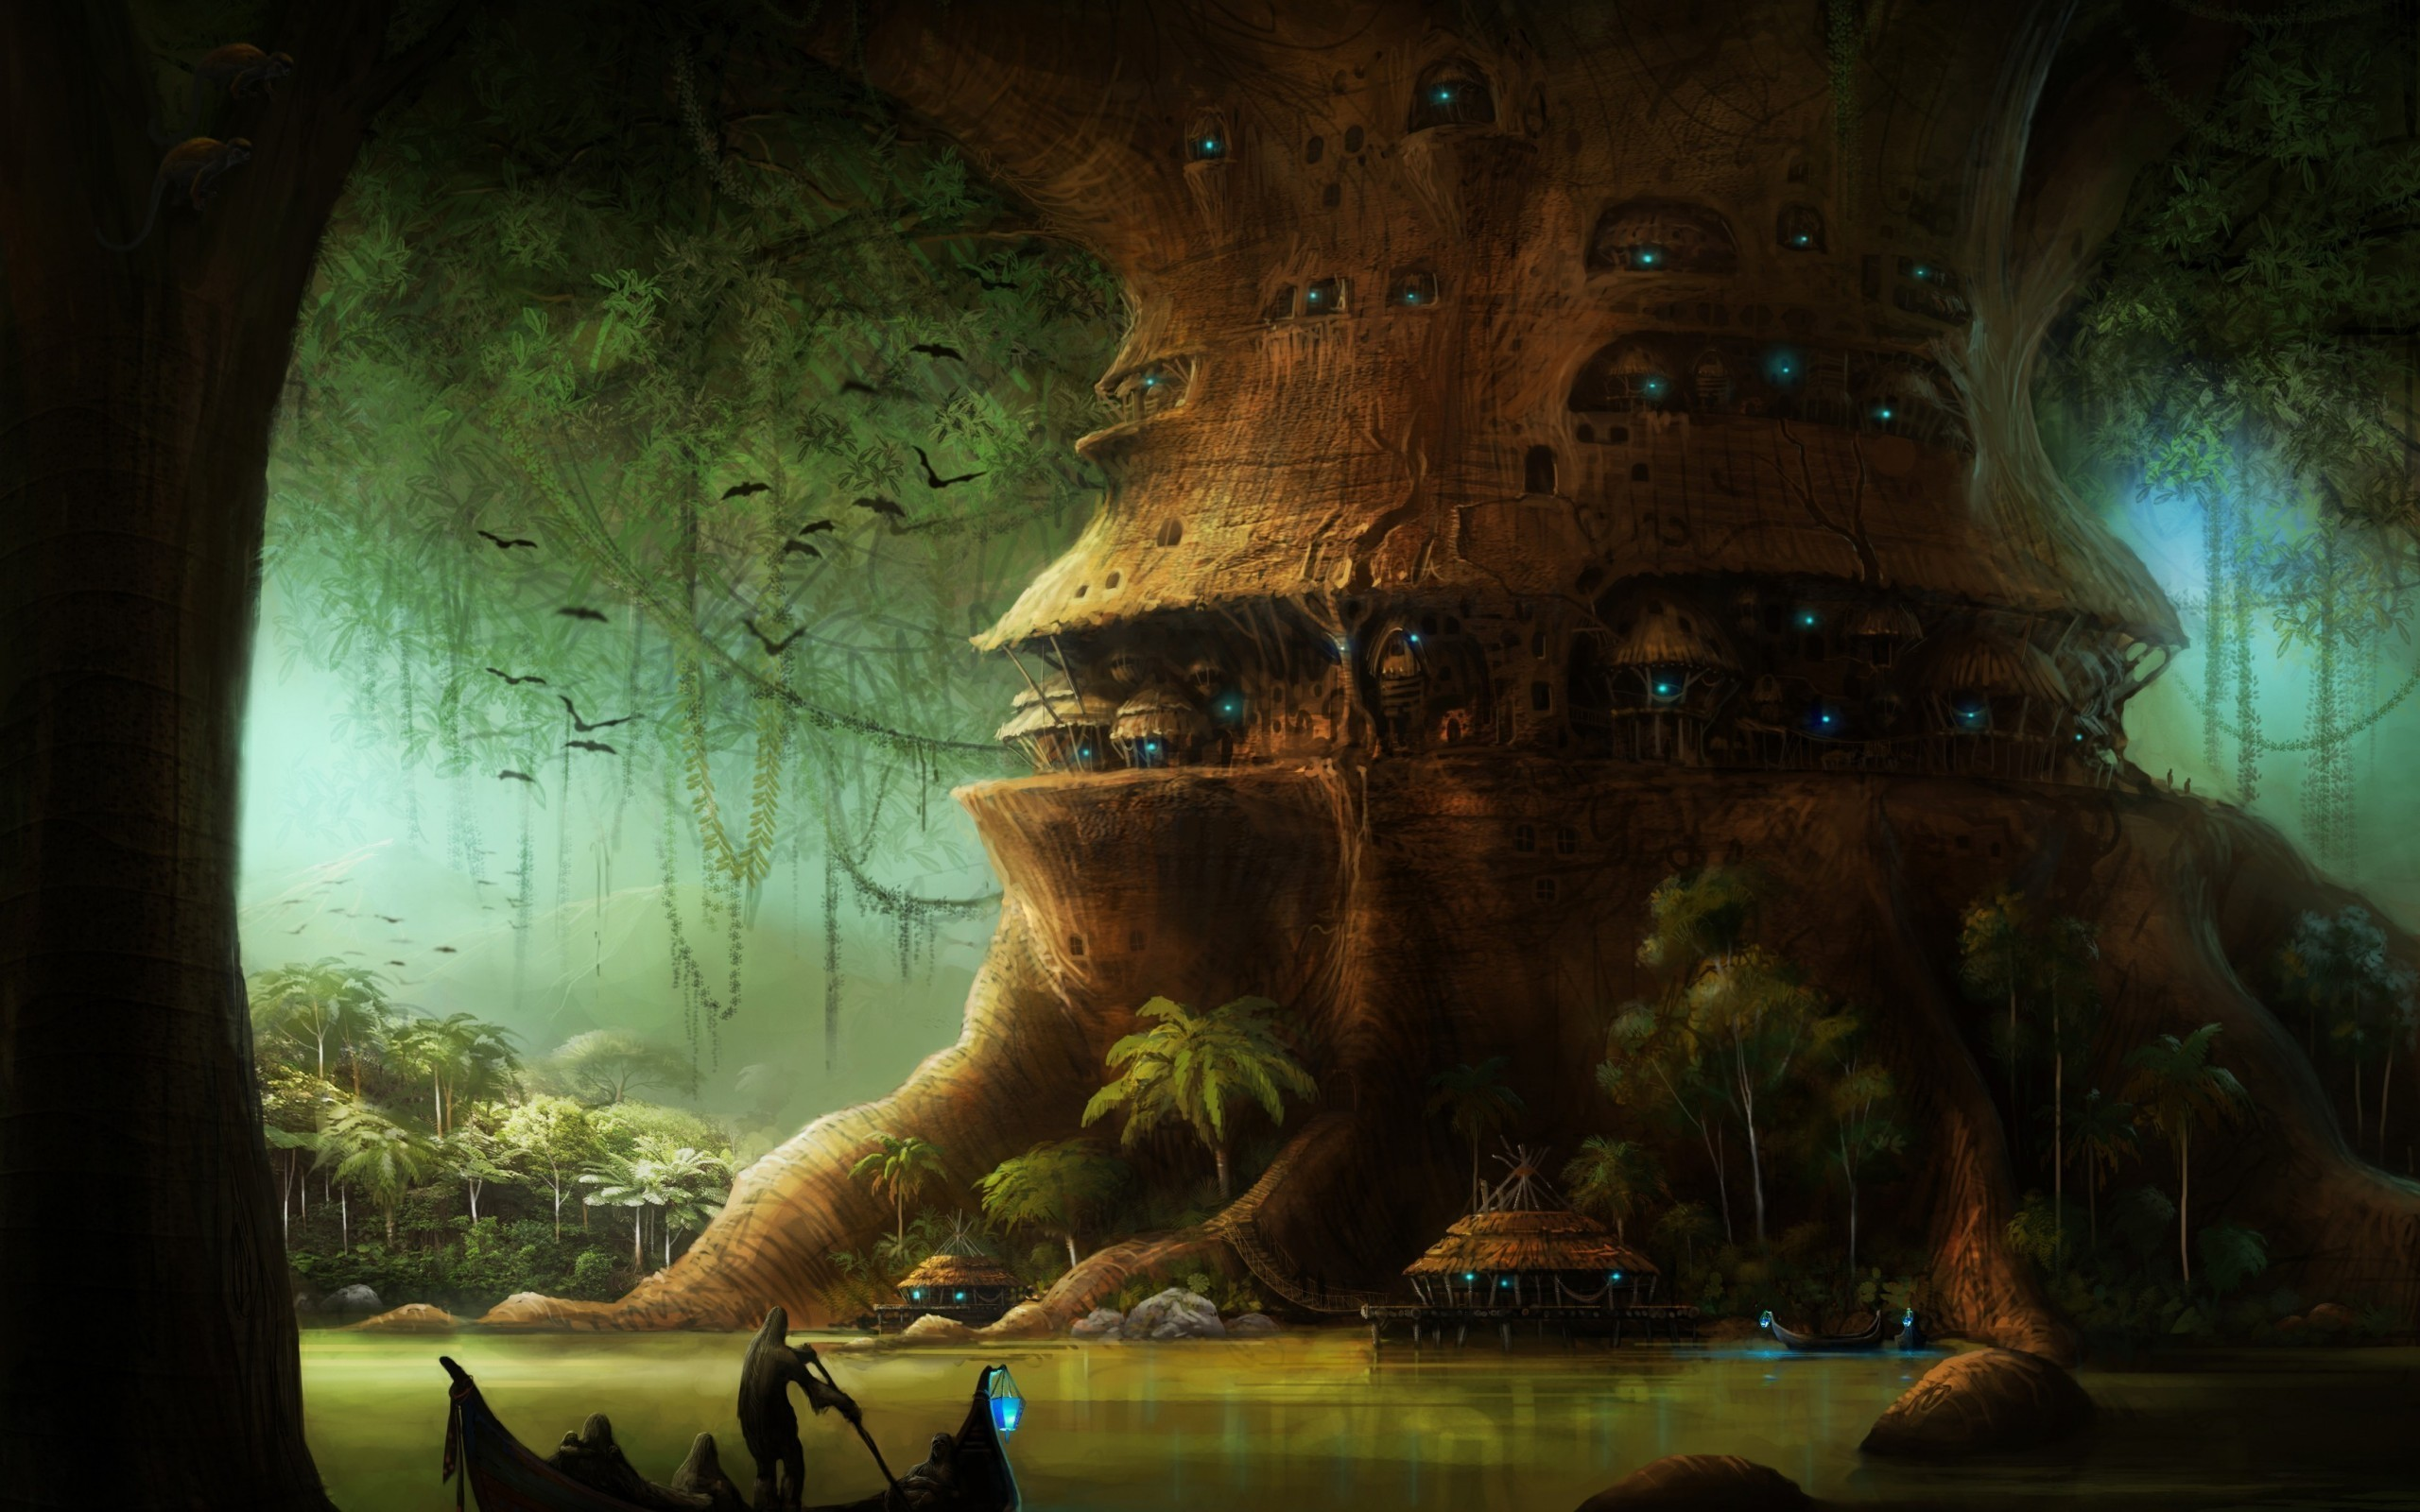 2560x1600 Fantasy City Tree Postnuclear Nuclear Fantasy Wallpaper